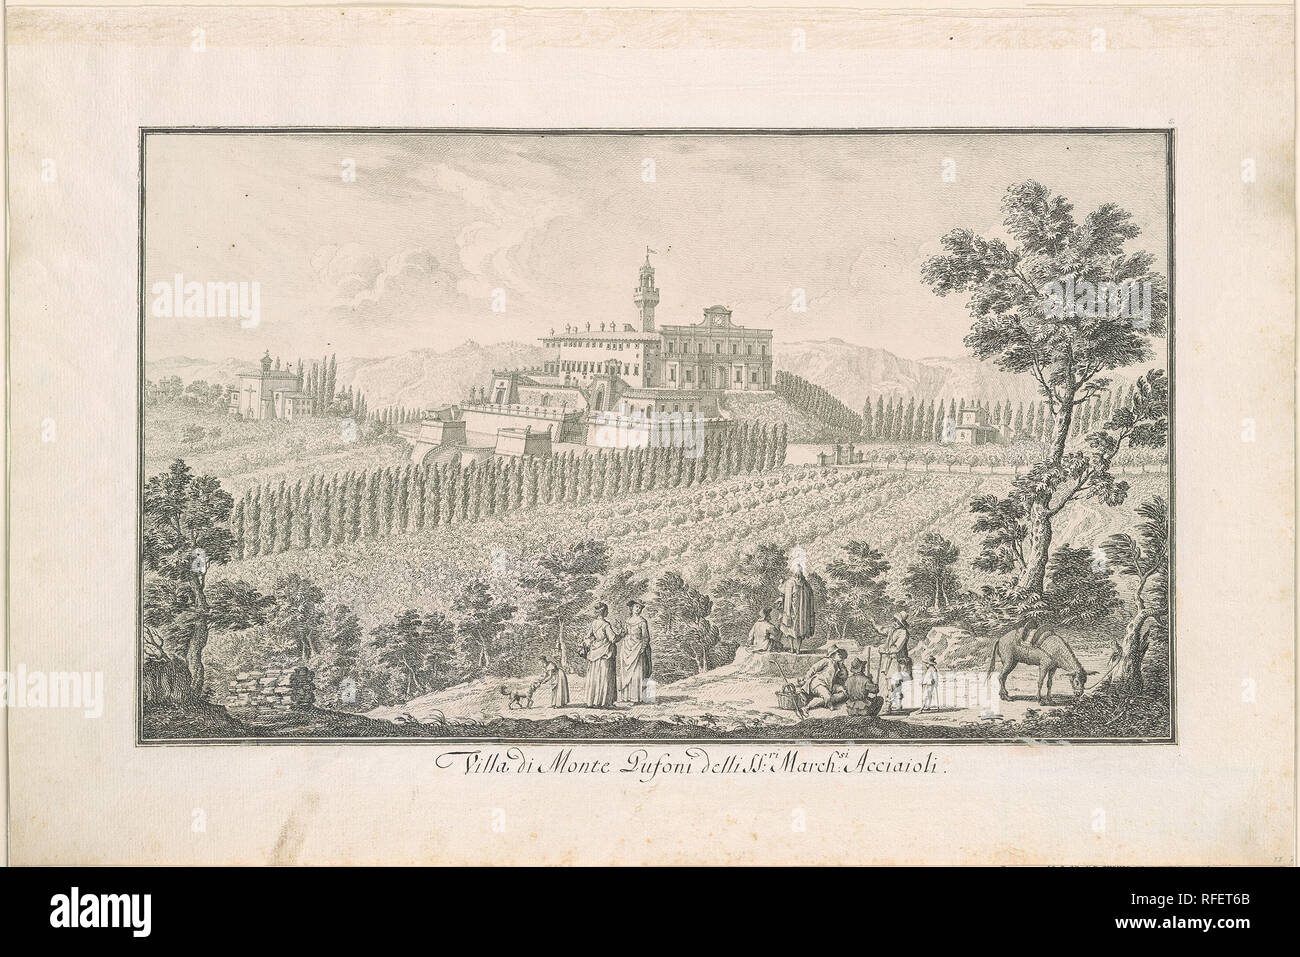 Giuseppe Zocchi 1711-1767 Castle of Montegufoni.jpg - RFET6B Stock Photo